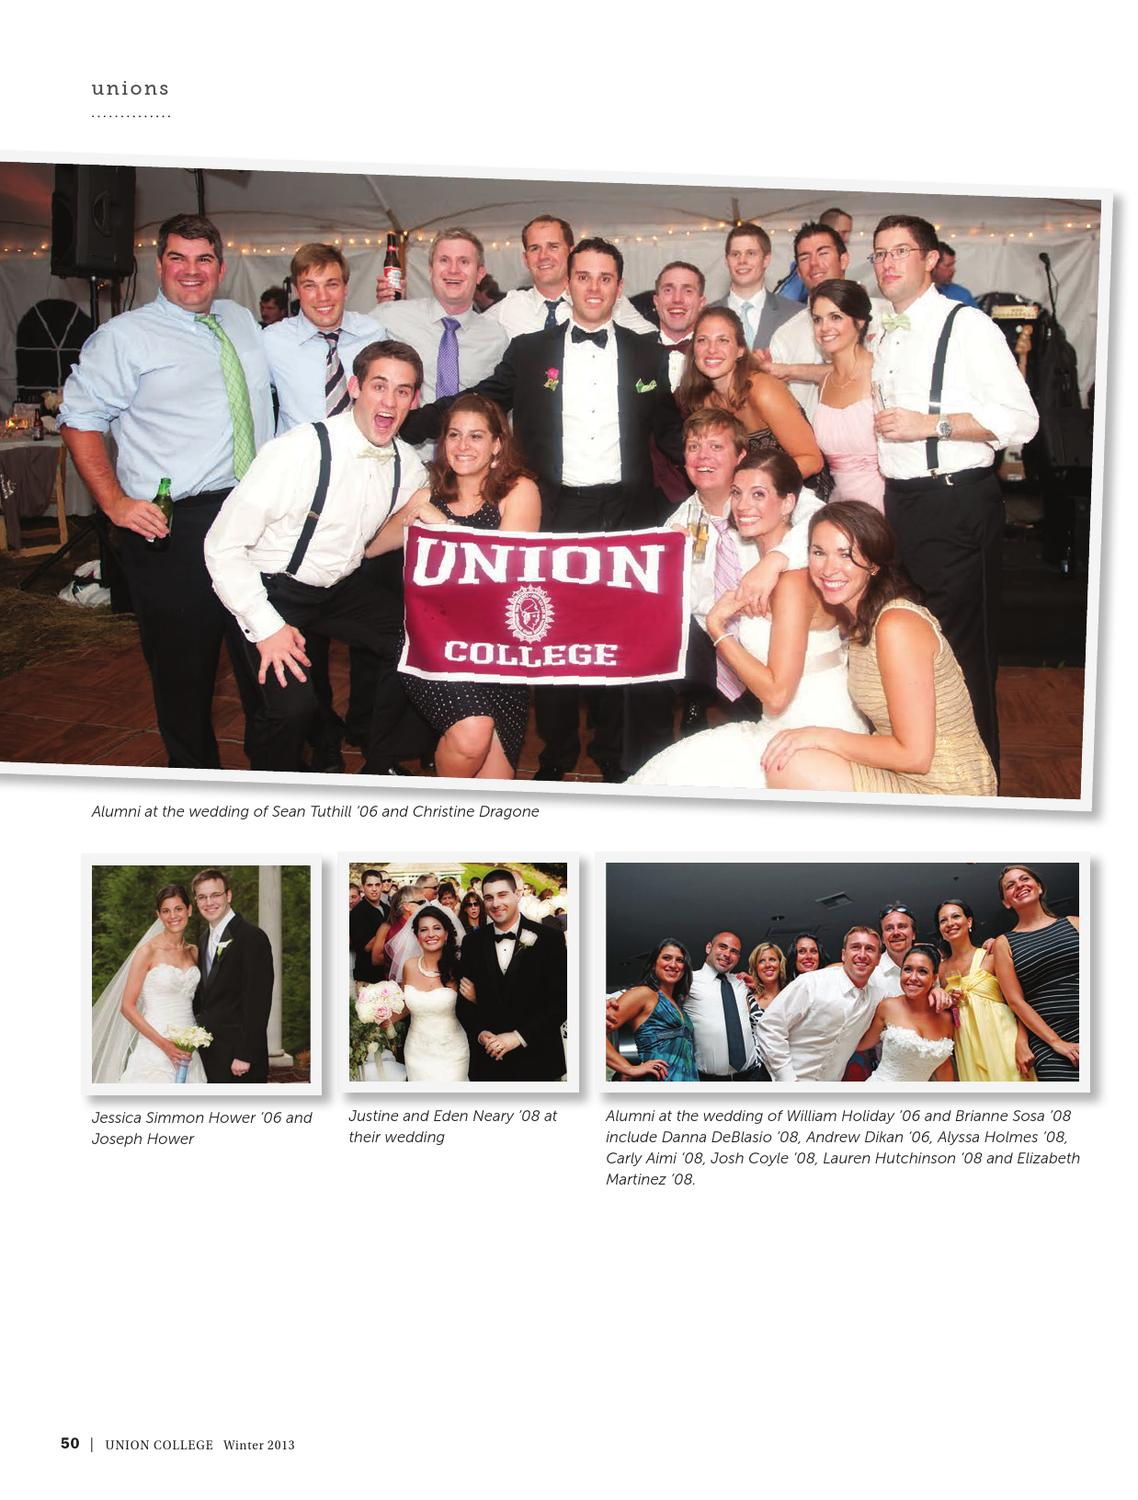 Union College Winter 2013 by Union College - issuu